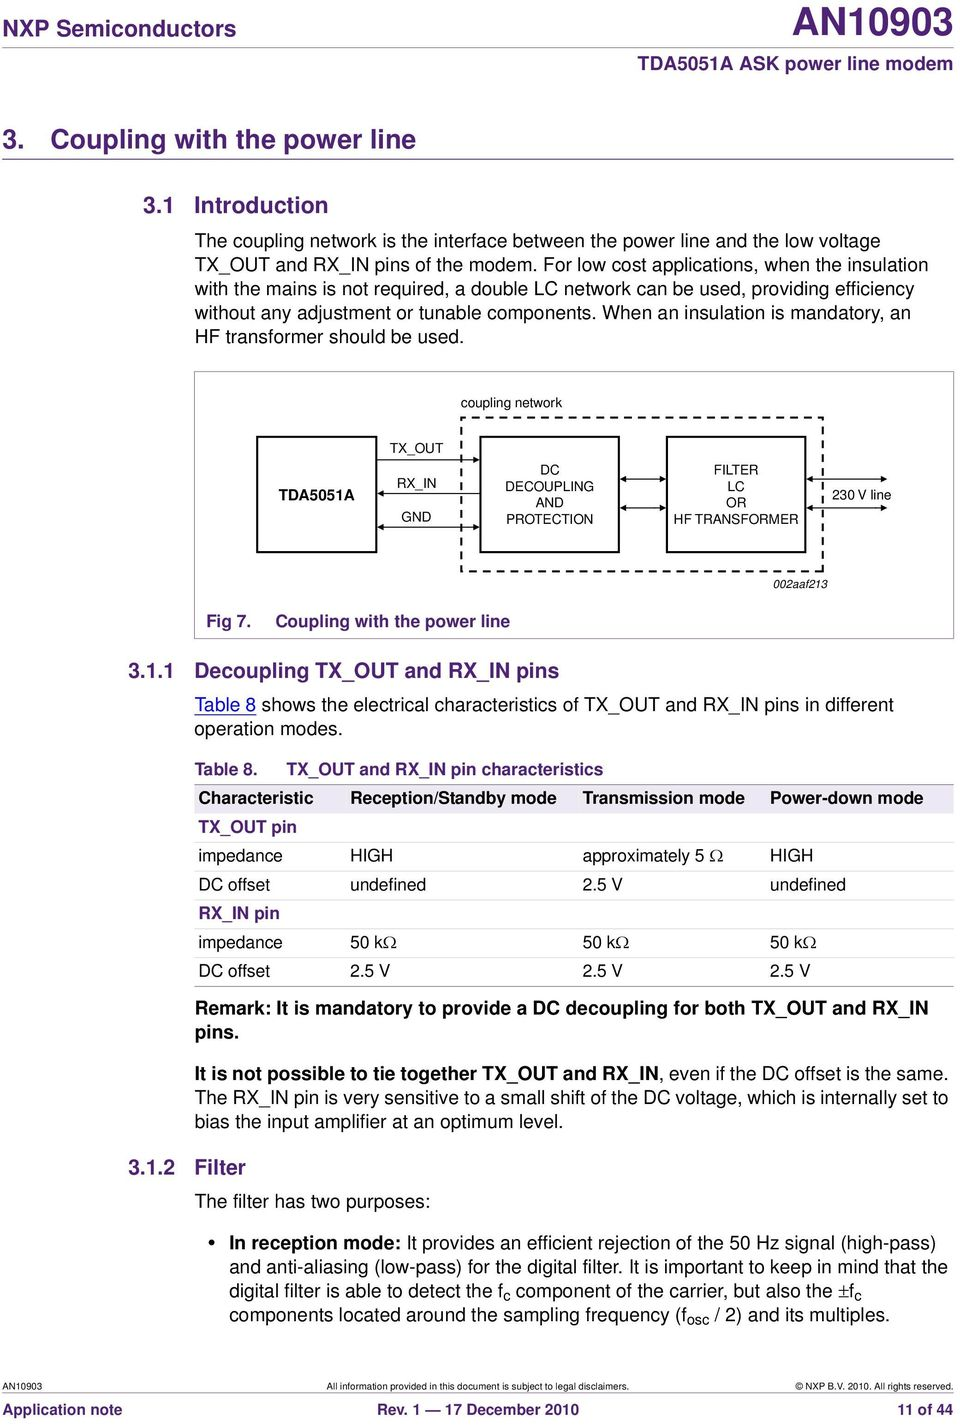 An Tda5051a Ask Power Line Modem Document Information Pdf Broadband Powerline When Insulation Is Mandatory Hf Transformer Should Be Used Coupling Network Tx Out